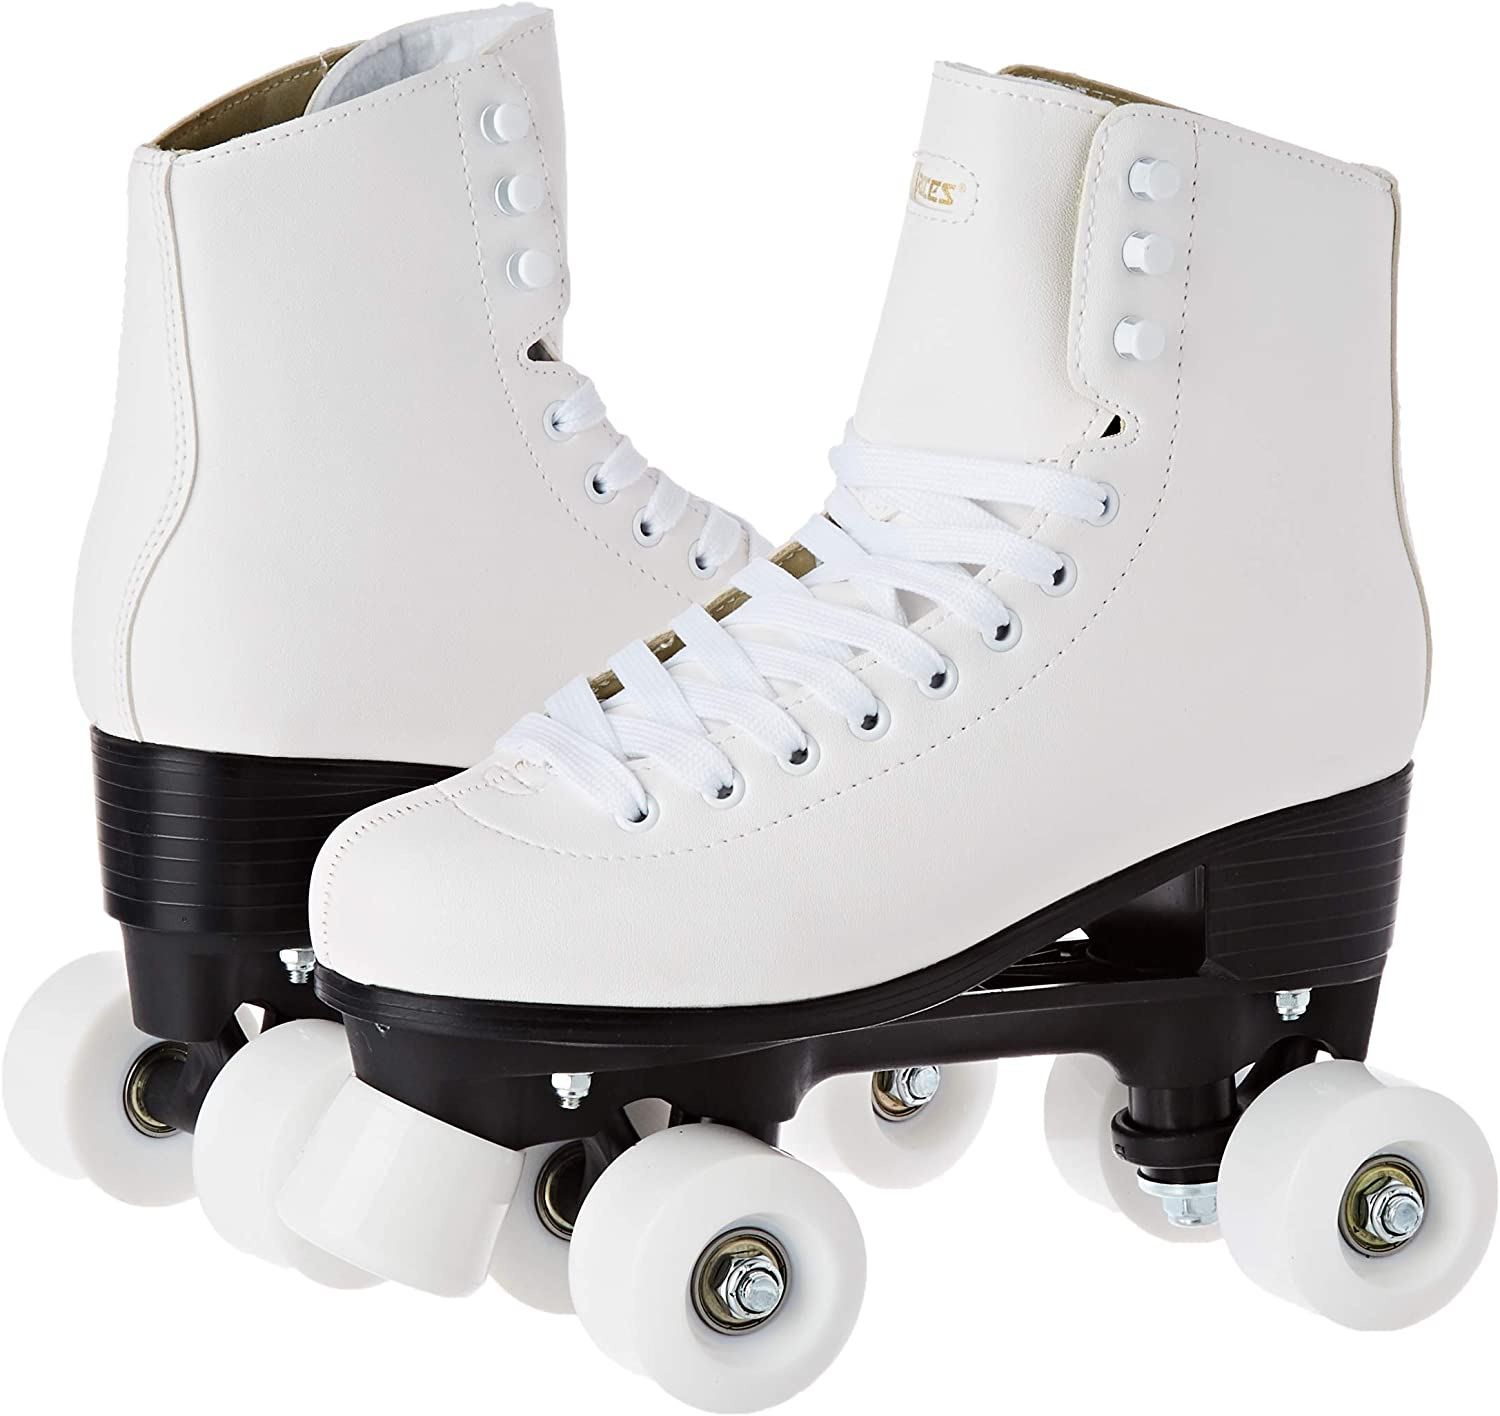 Roces RC1 Classic Roller Skates Artistic - 2